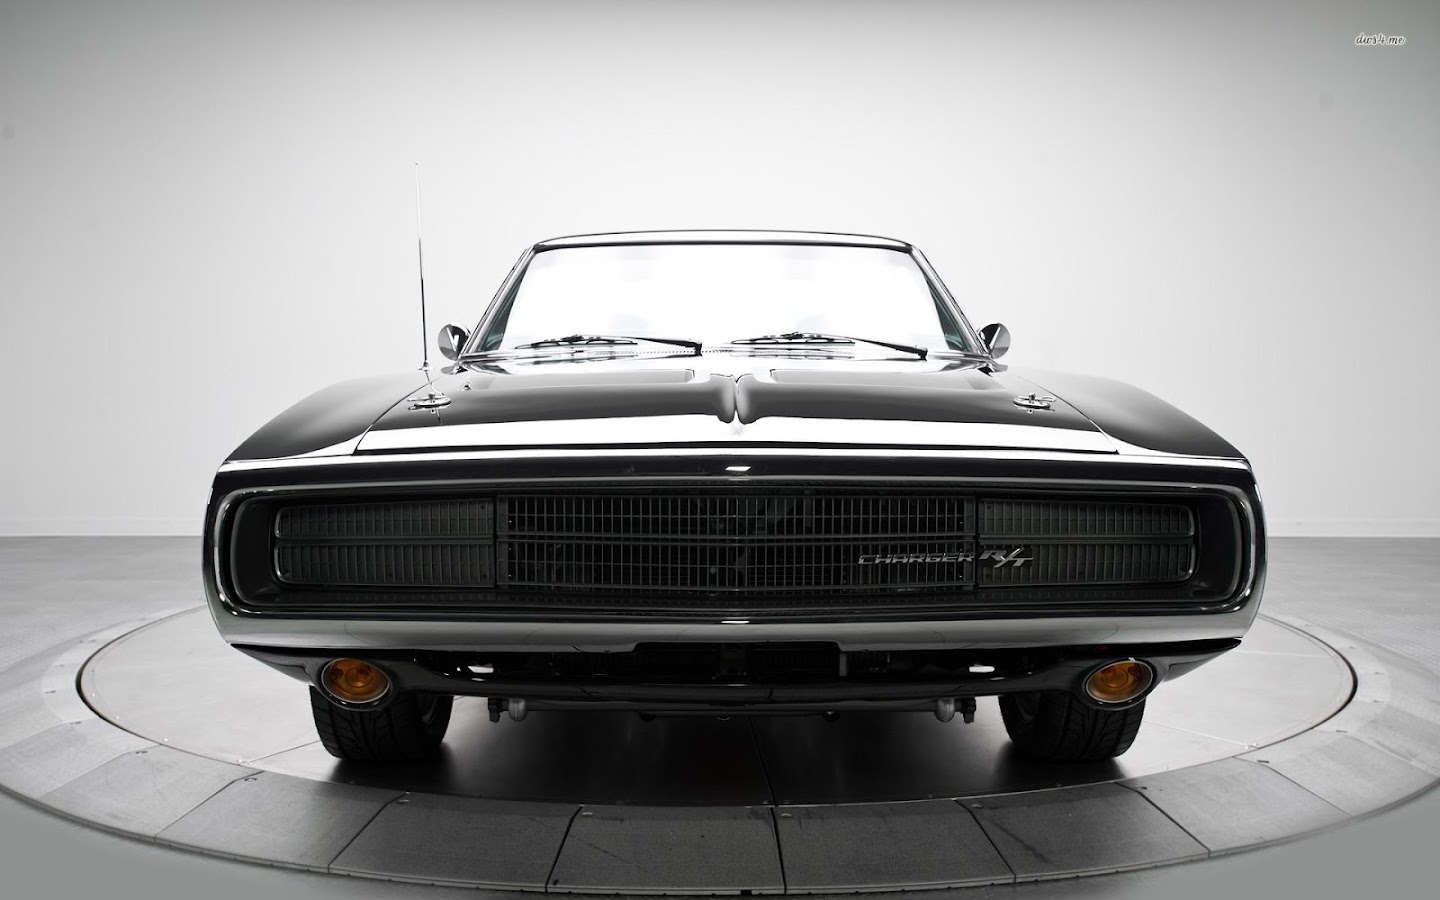 American Muscle Car Wallpaper Android Apps On Google Play